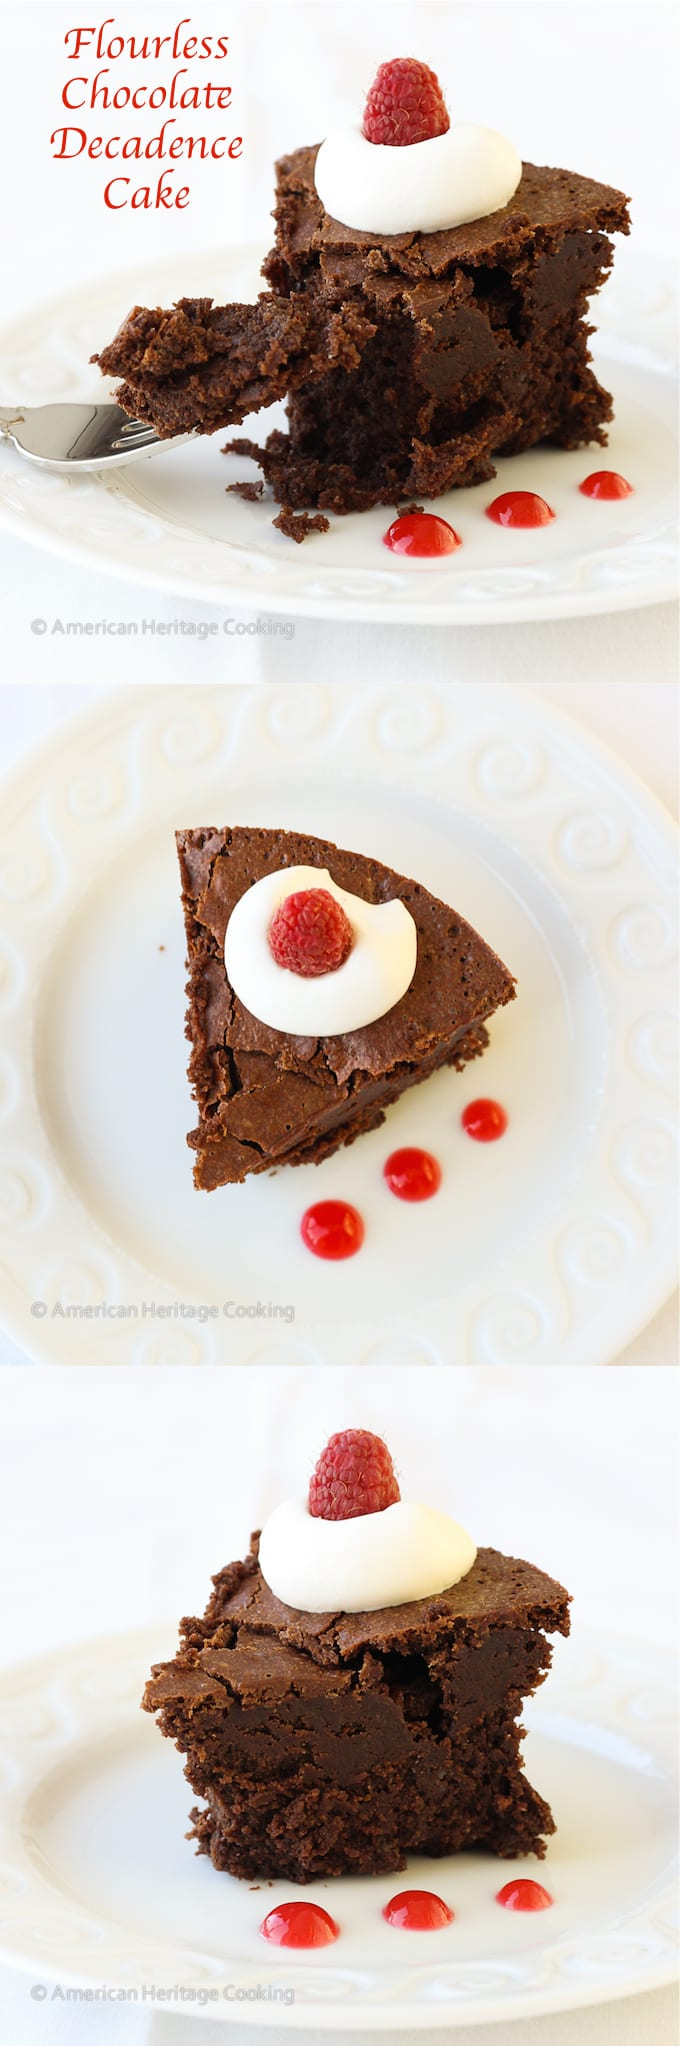 Flourless Chocolate Decadence Cake